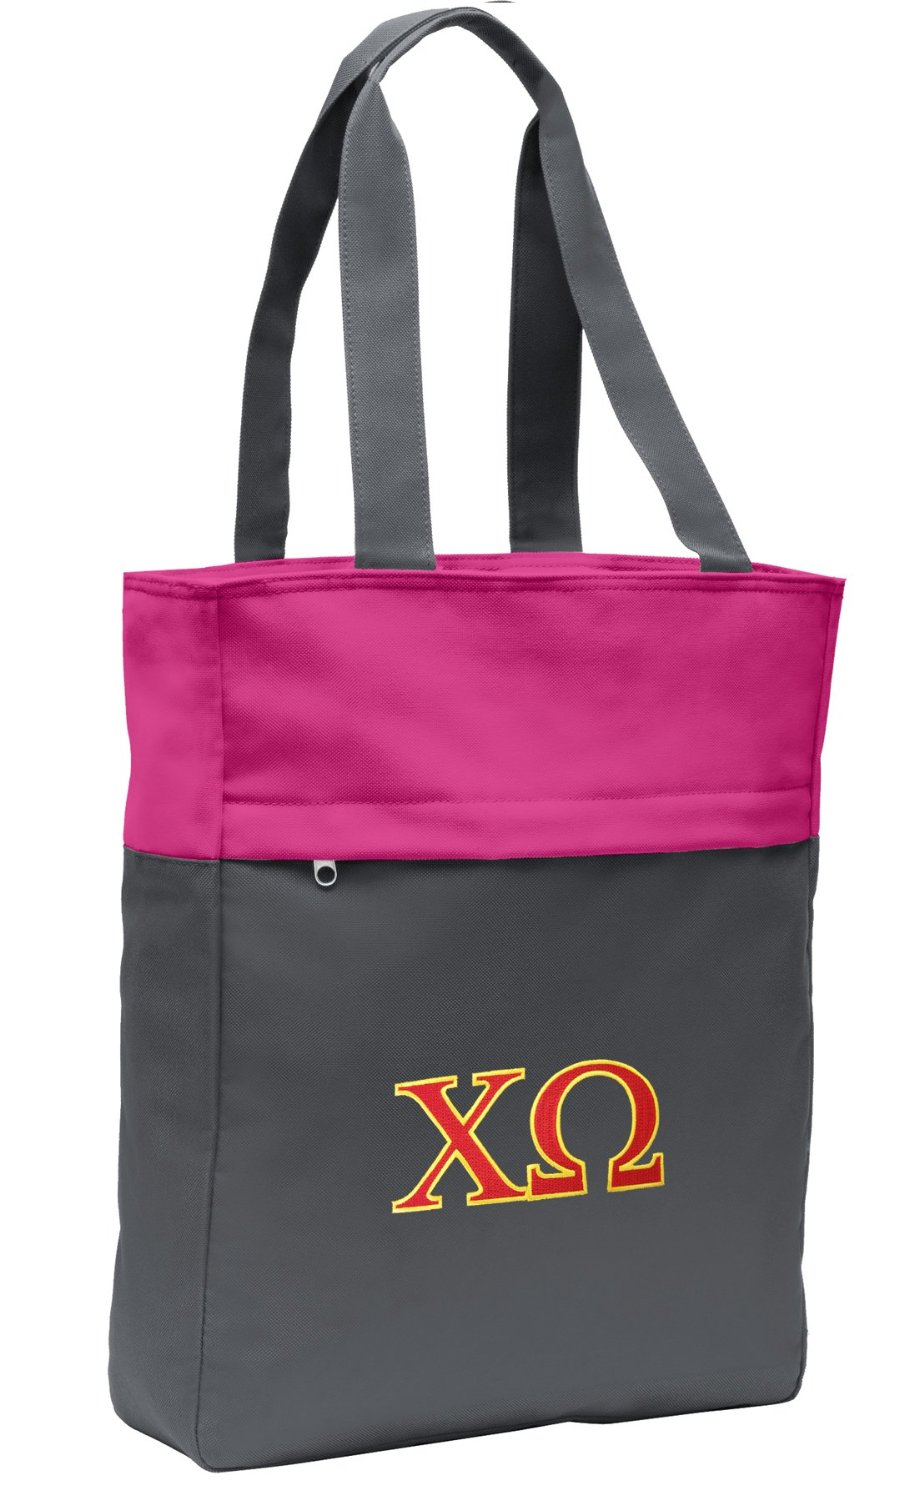 Chi Omega Tote Bag Womens Ladies CarryAll Totes